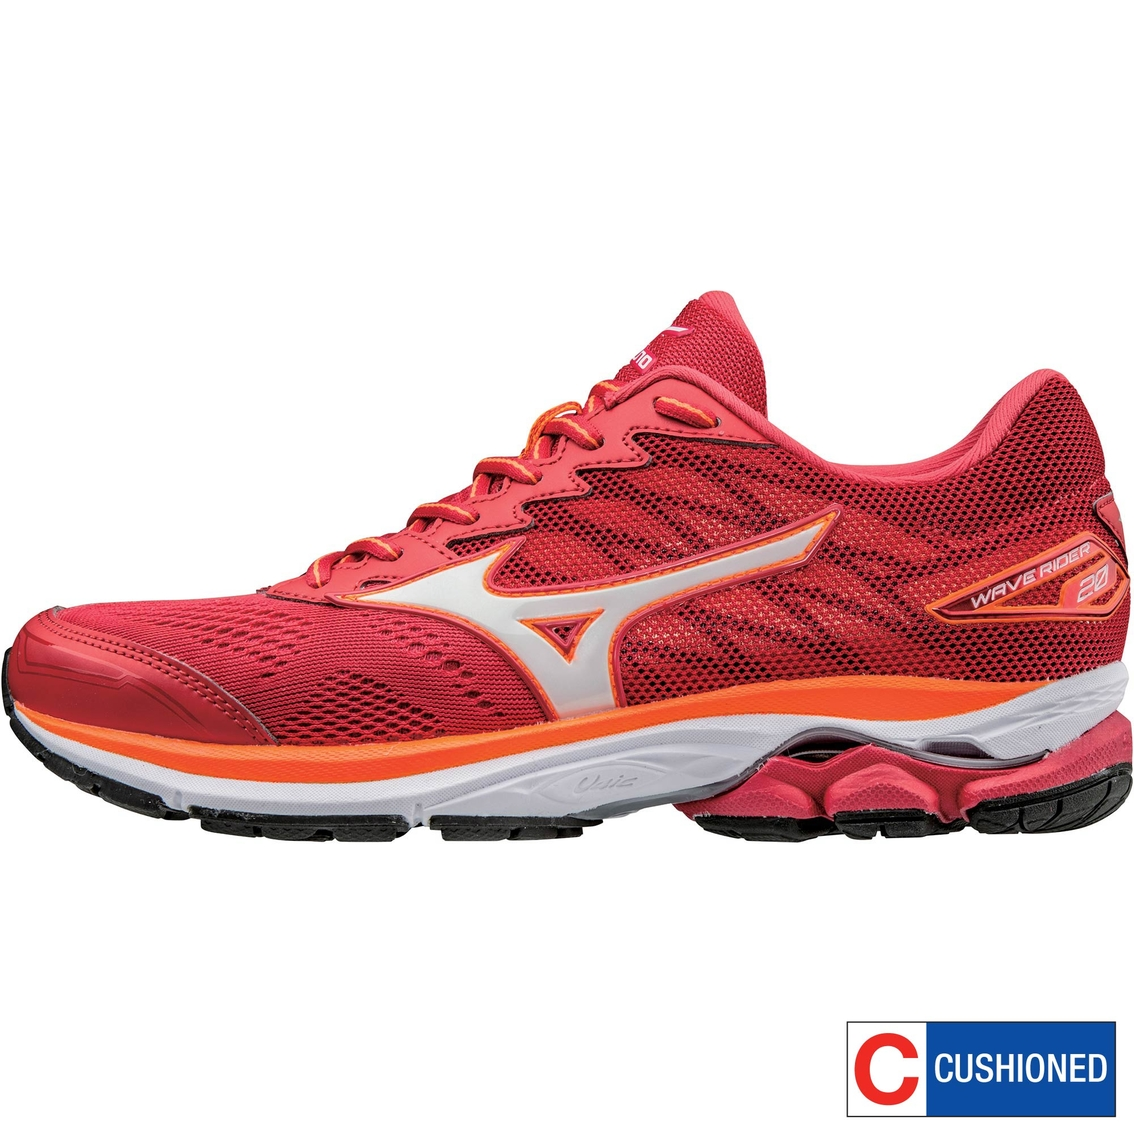 mizuno womens volleyball shoes size 8 x 3 feet red army